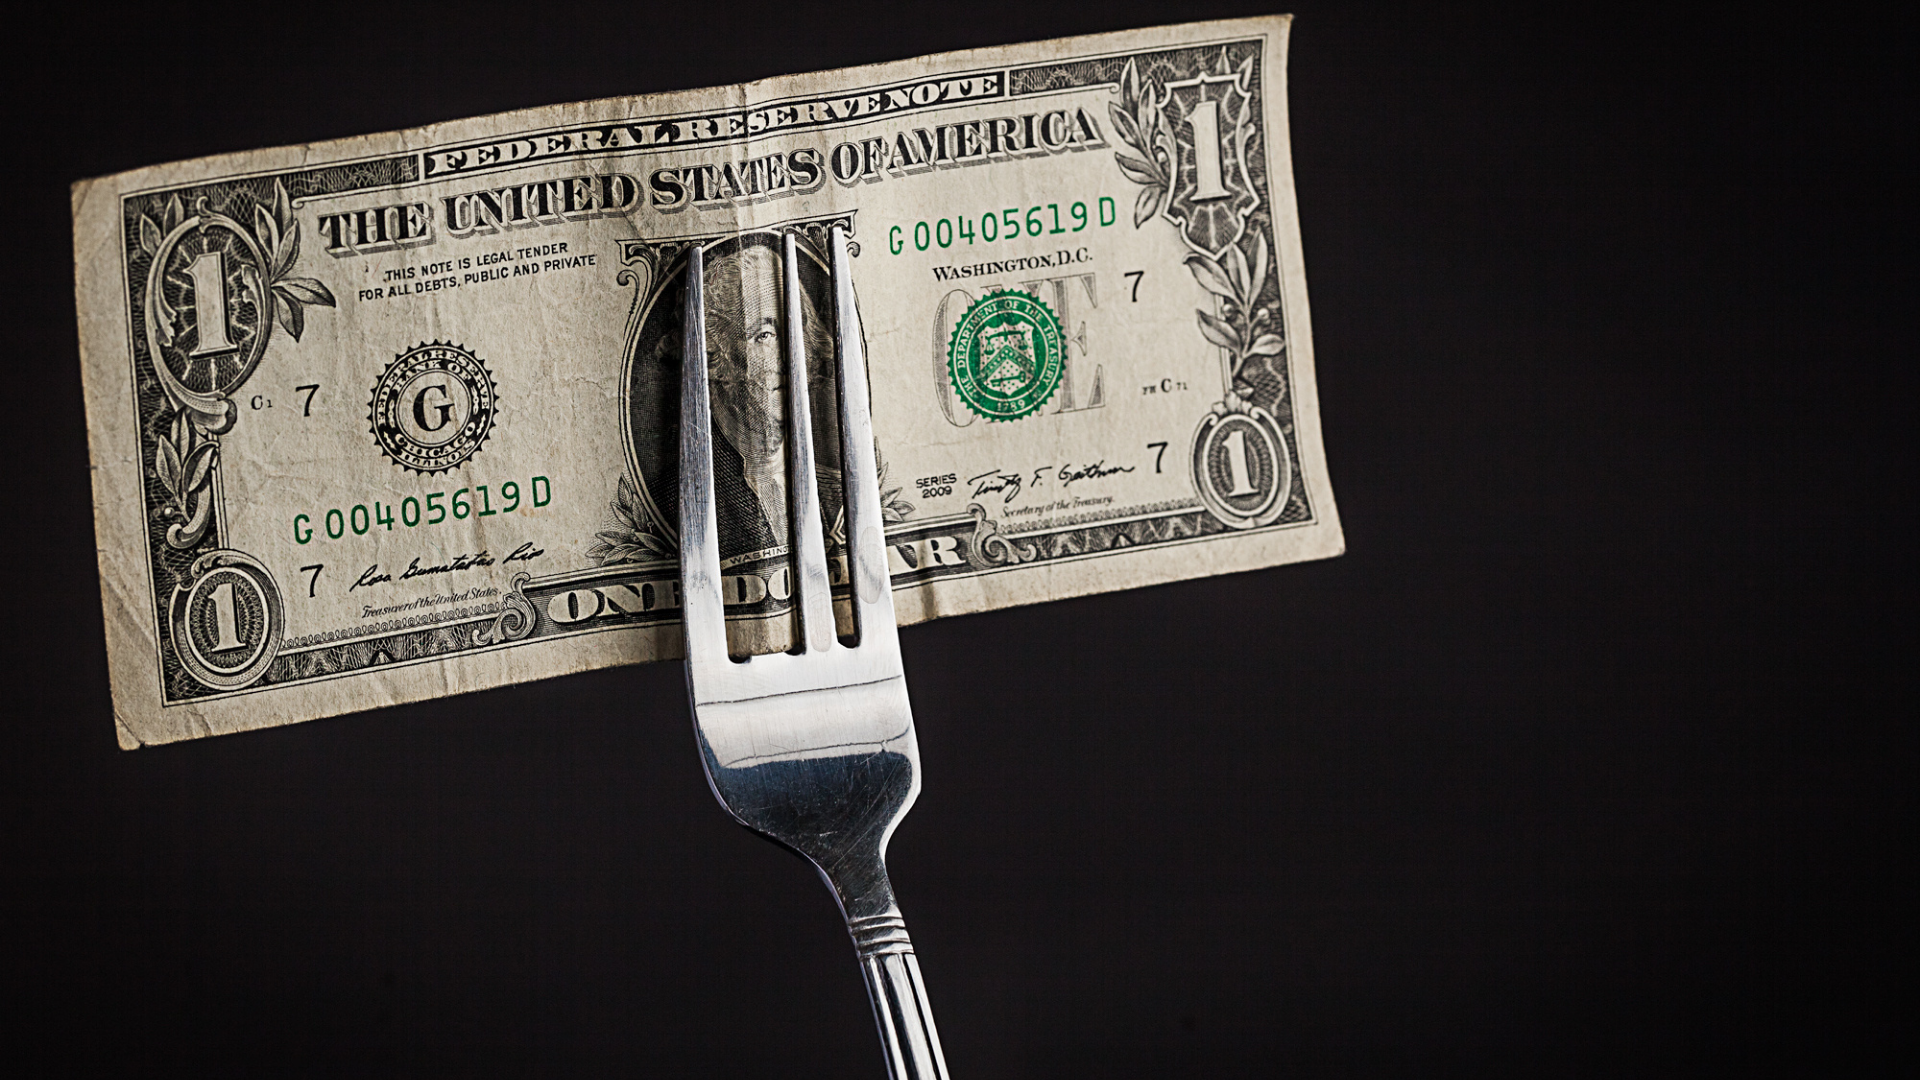 Our food costs far more than the price we pay